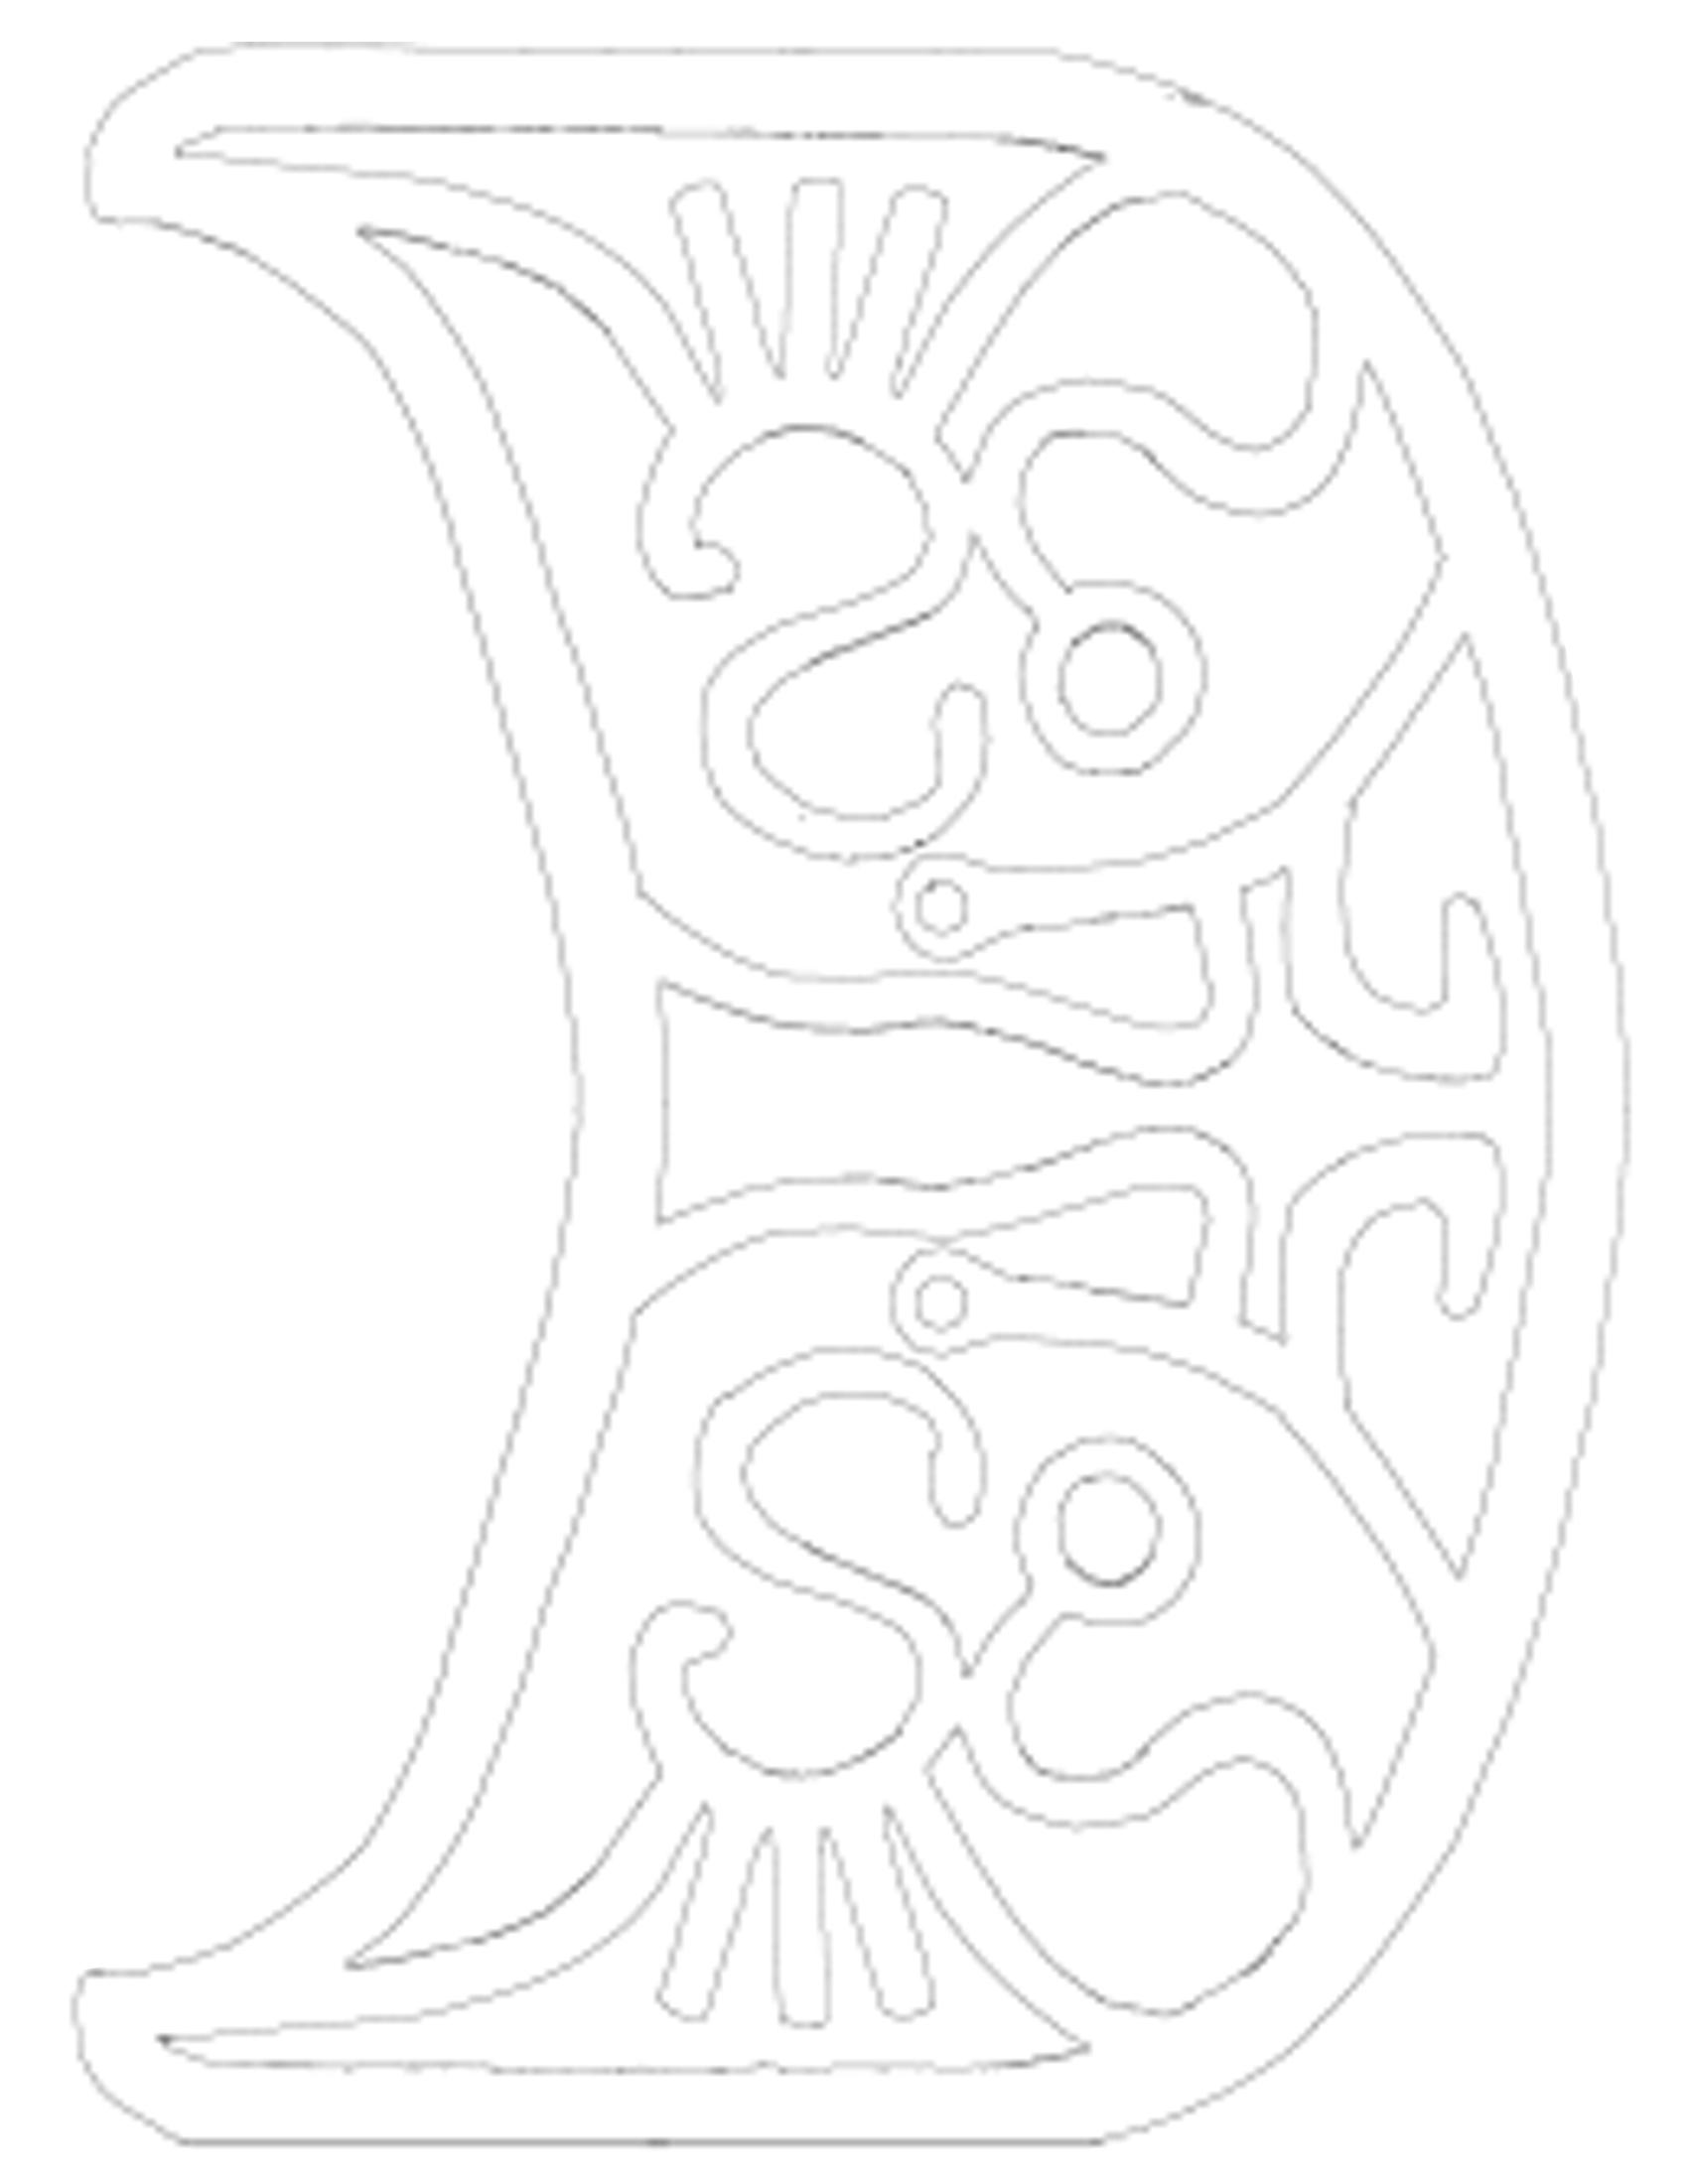 Zelda Pauldron Template 1 By Samuraikeibatsu On Deviantart